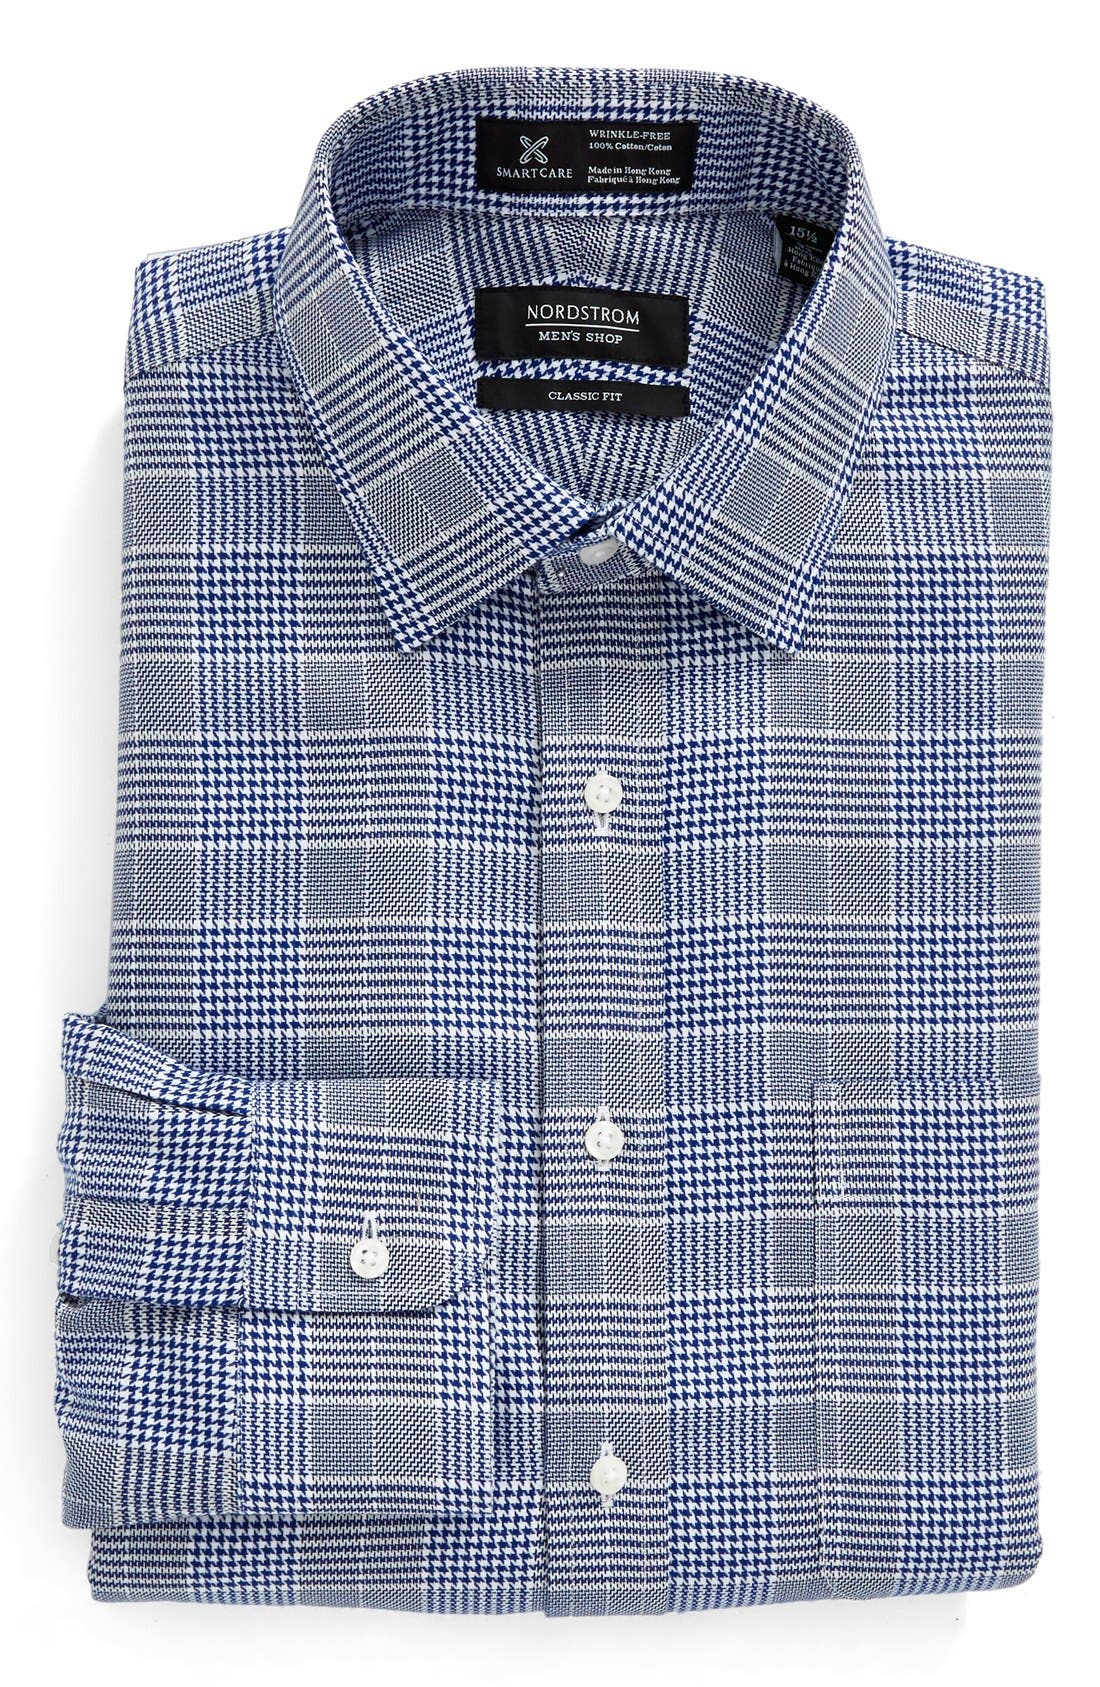 NORDSTROM MEN'S SHOP Smartcare™ Classic Fit Graphic Check